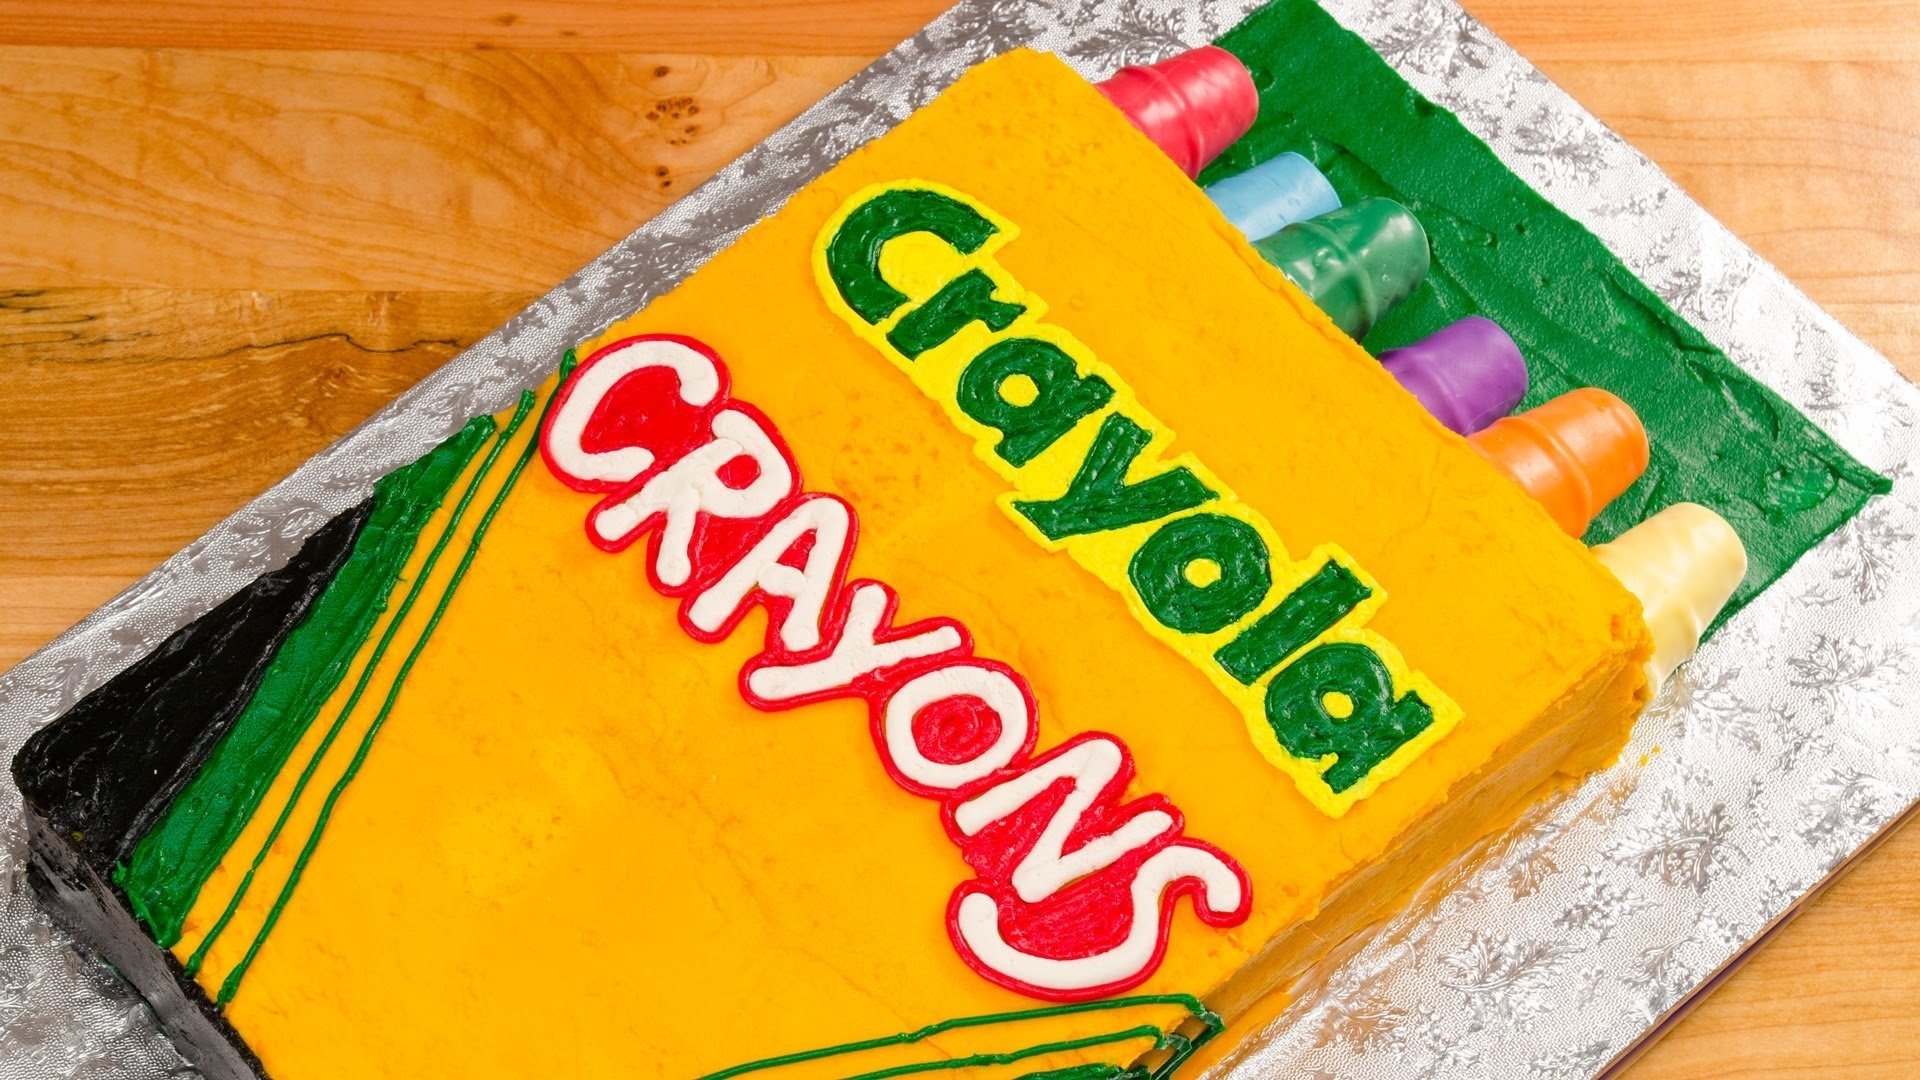 10 Best Back To School Cake Ideas crayola crayons cake back to school from cookies cupcakes and